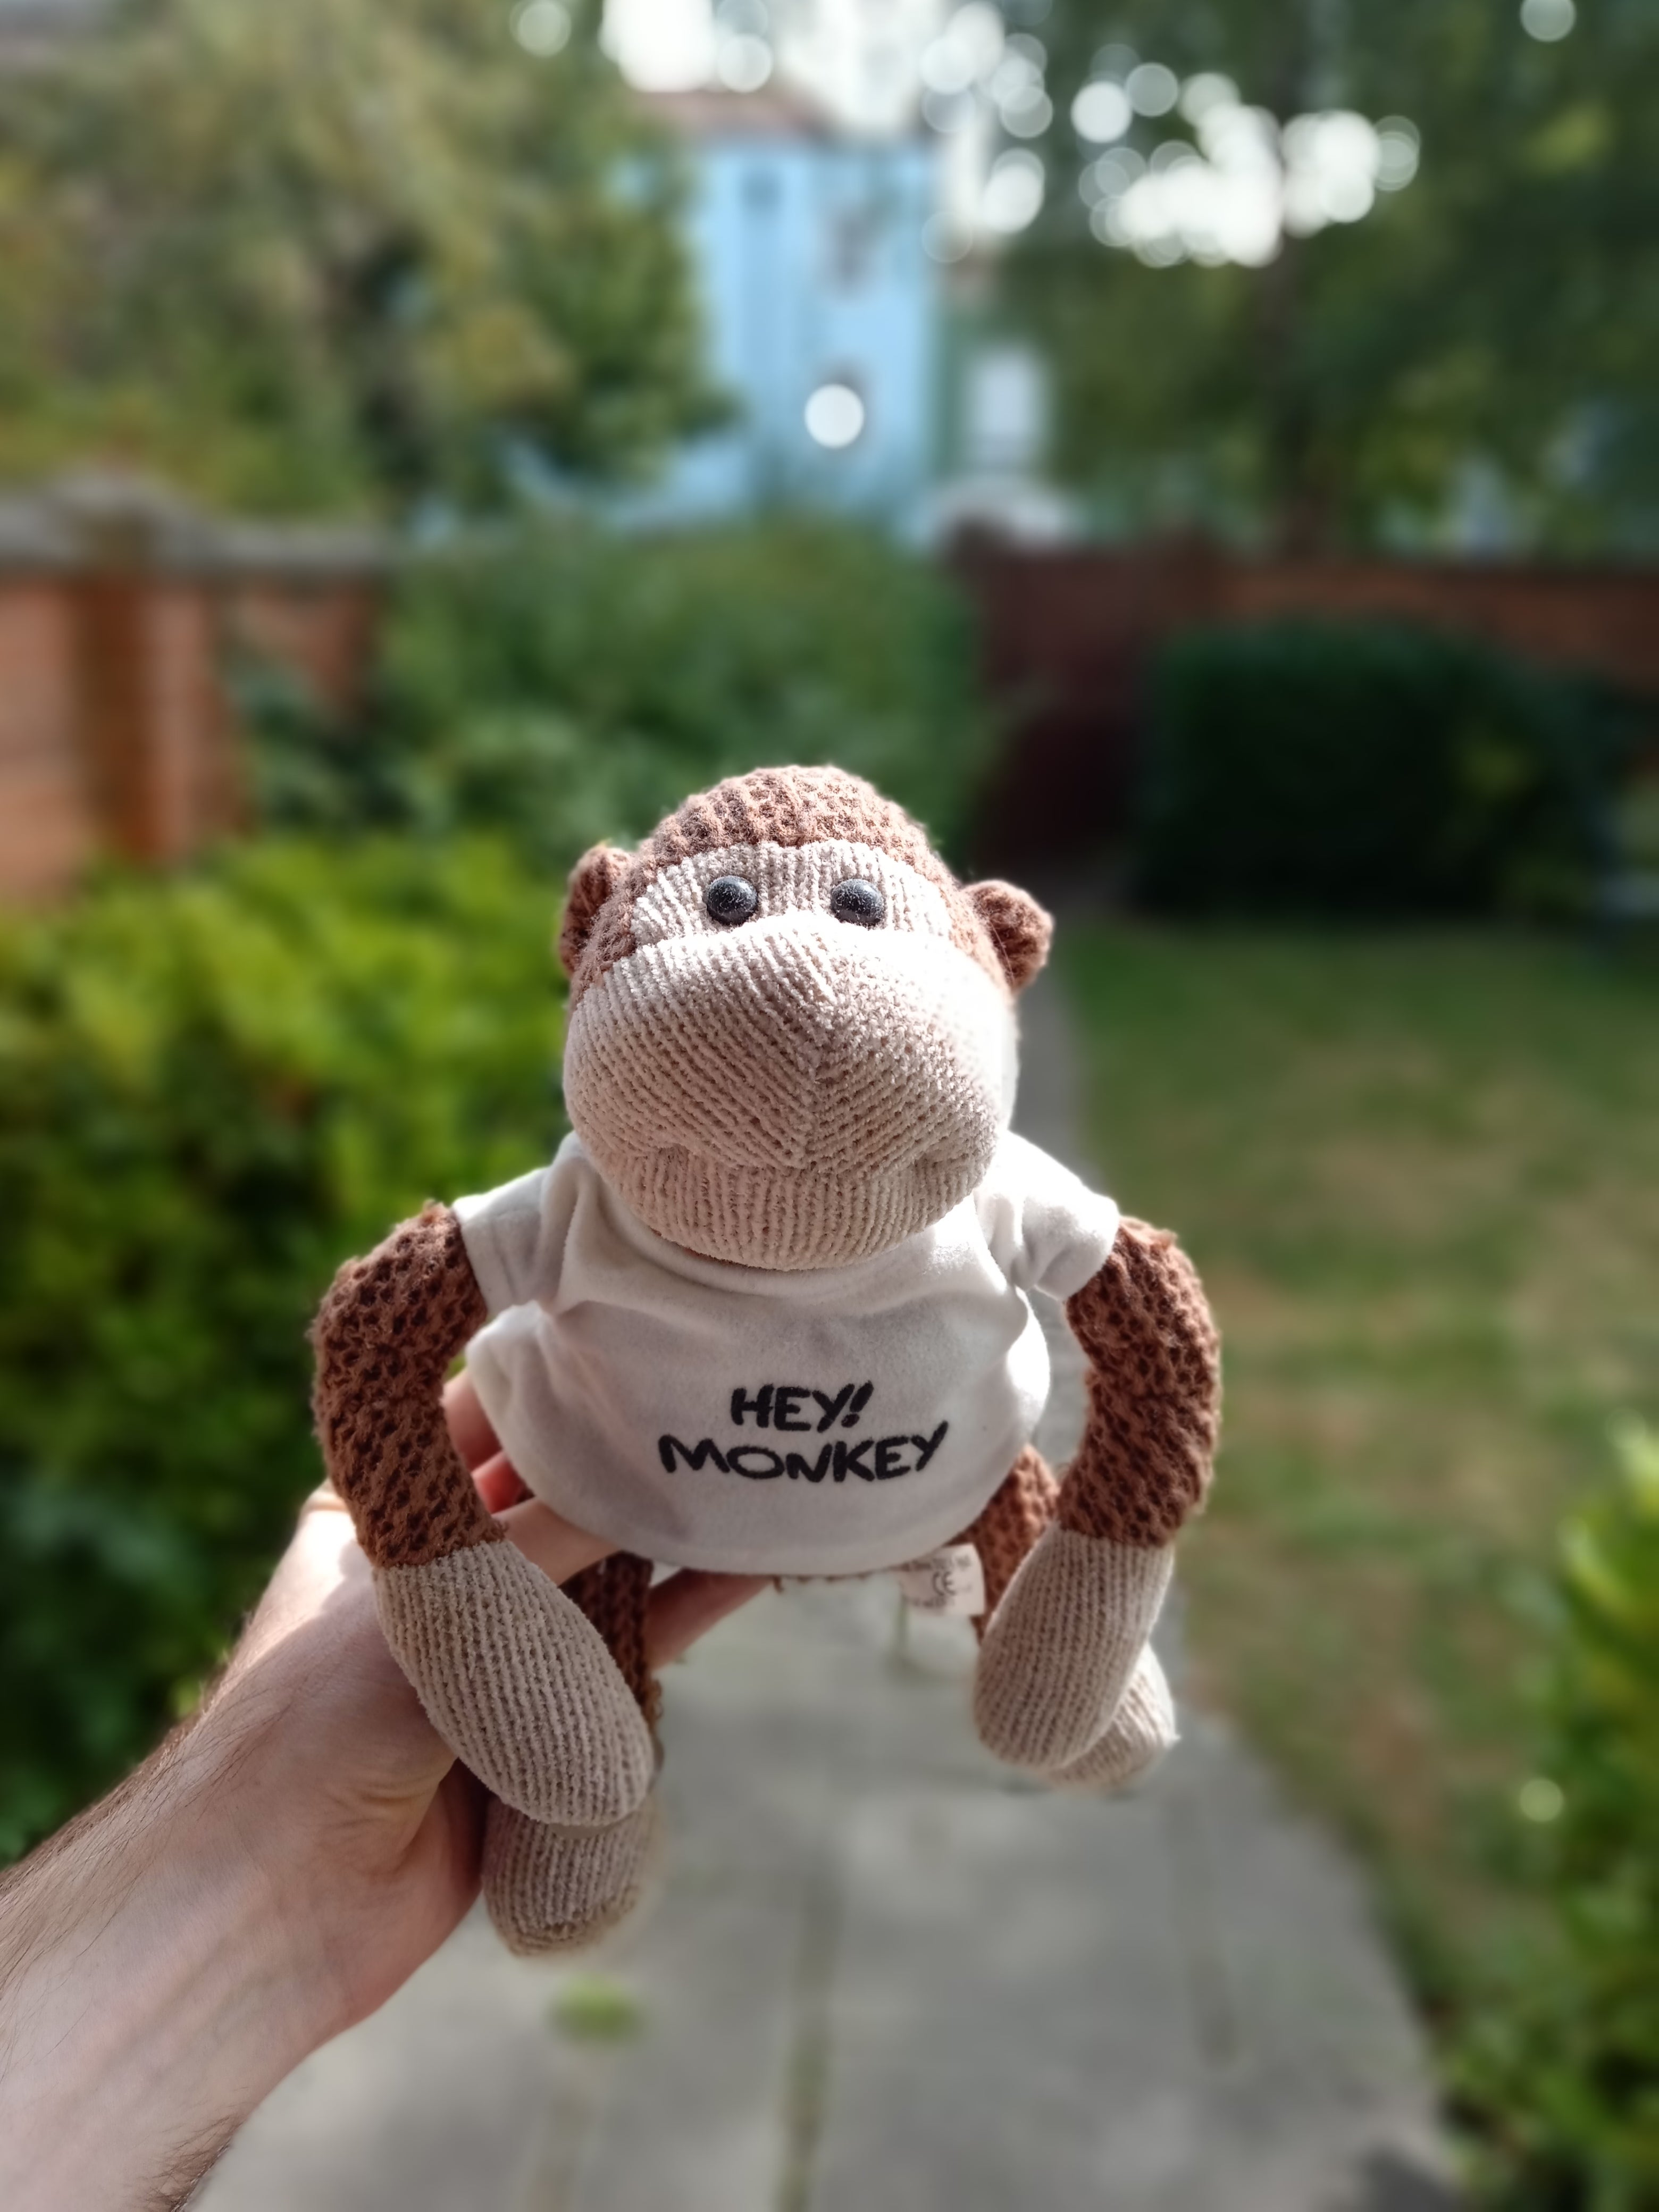 Nuu Mobile G3 camera sample - portrait mode with a monkey doll